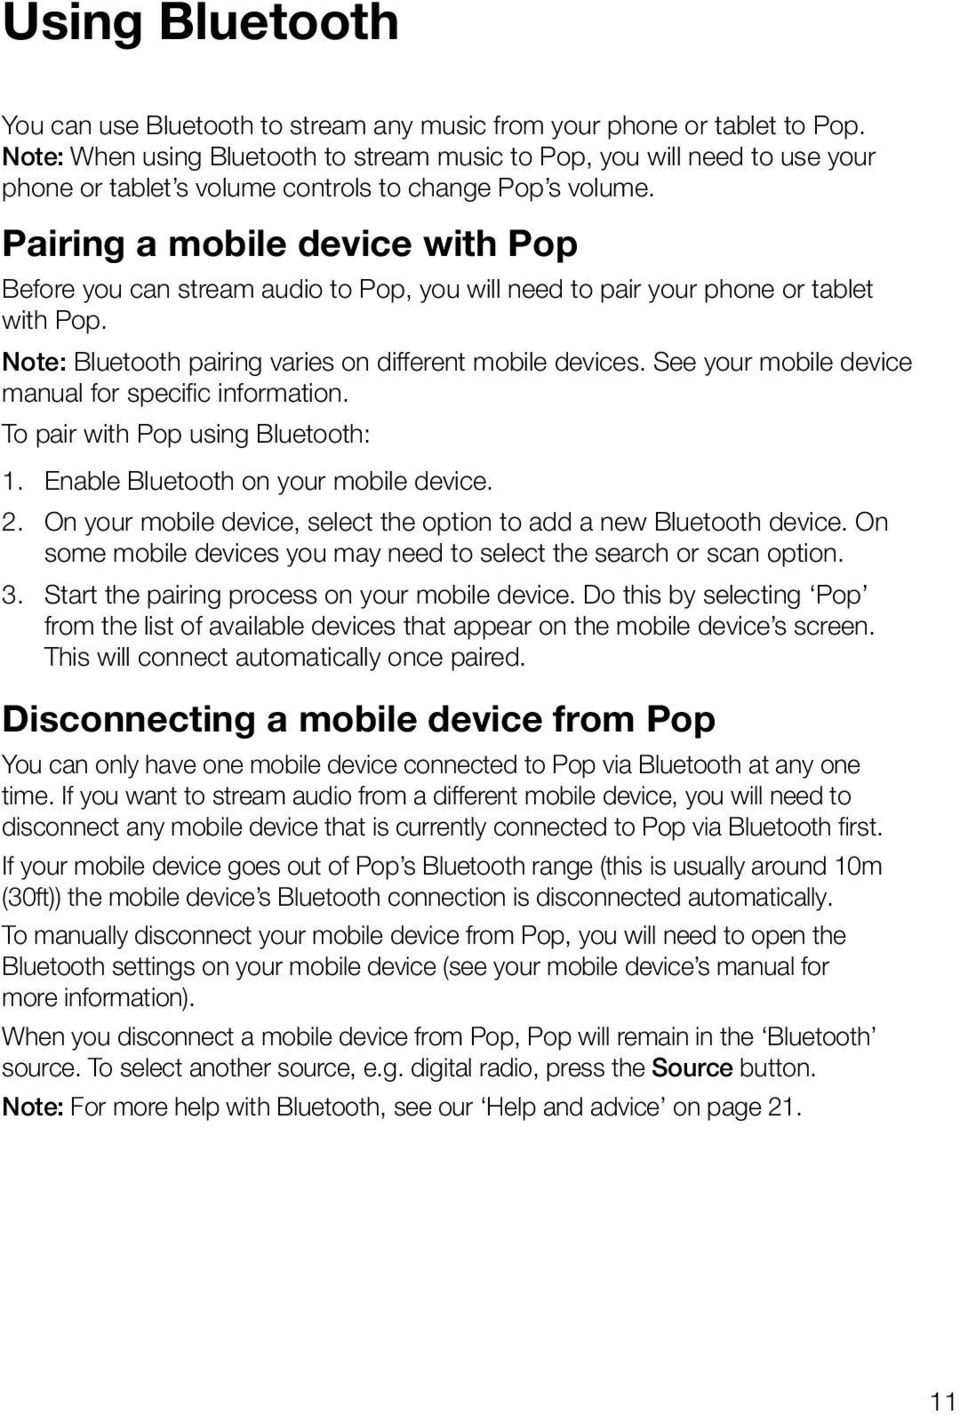 Pairing a mobile device with Pop Before you can stream audio to Pop, you will need to pair your phone or tablet with Pop. Note: Bluetooth pairing varies on different mobile devices.